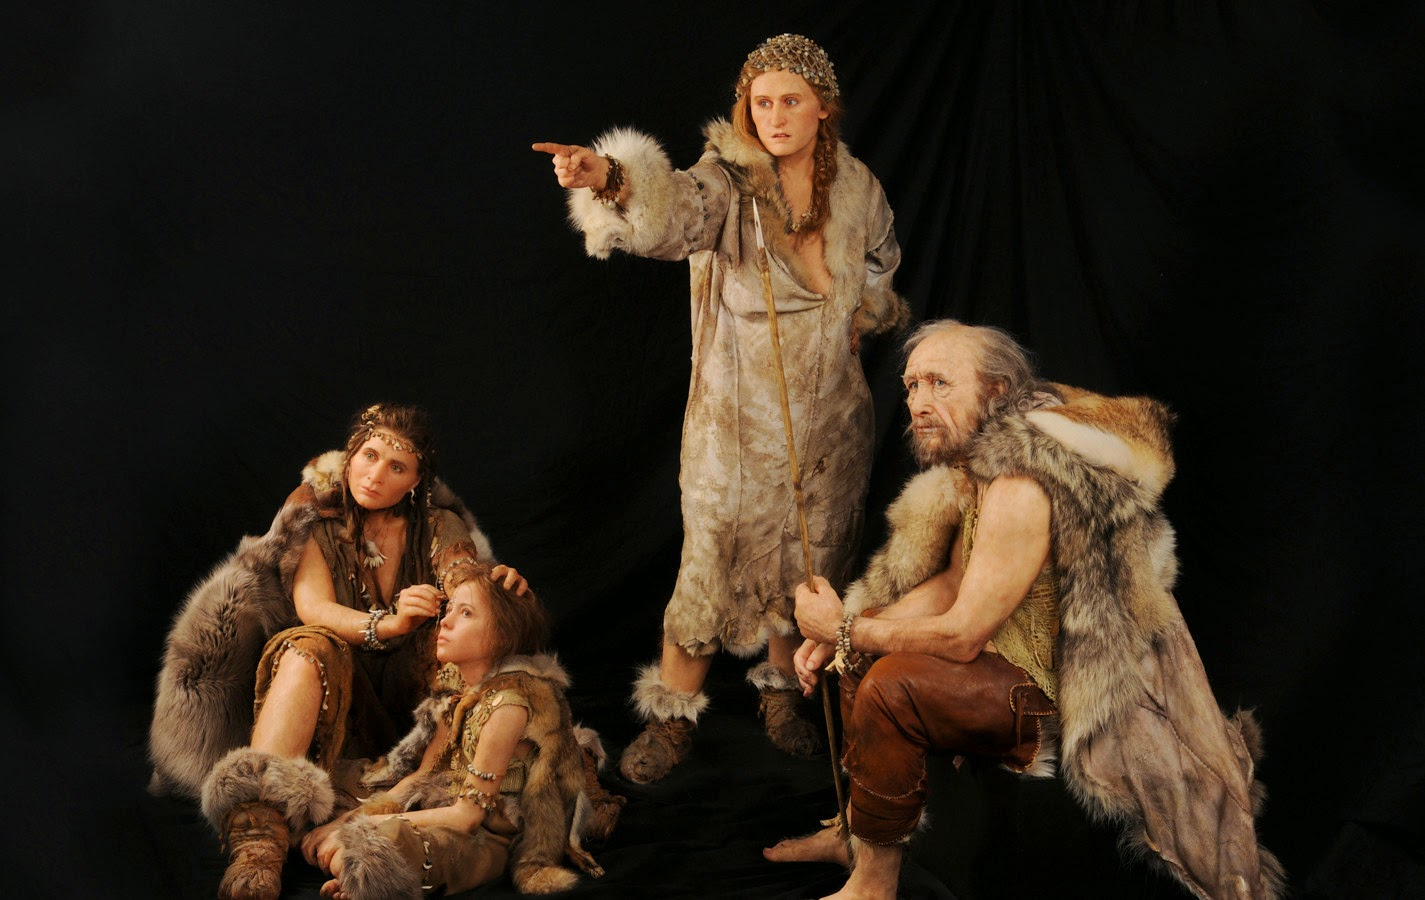 world of mysteries amazing sculptures of ancient hominids by paleoartist elisabeth dayn 232 s 30 pics